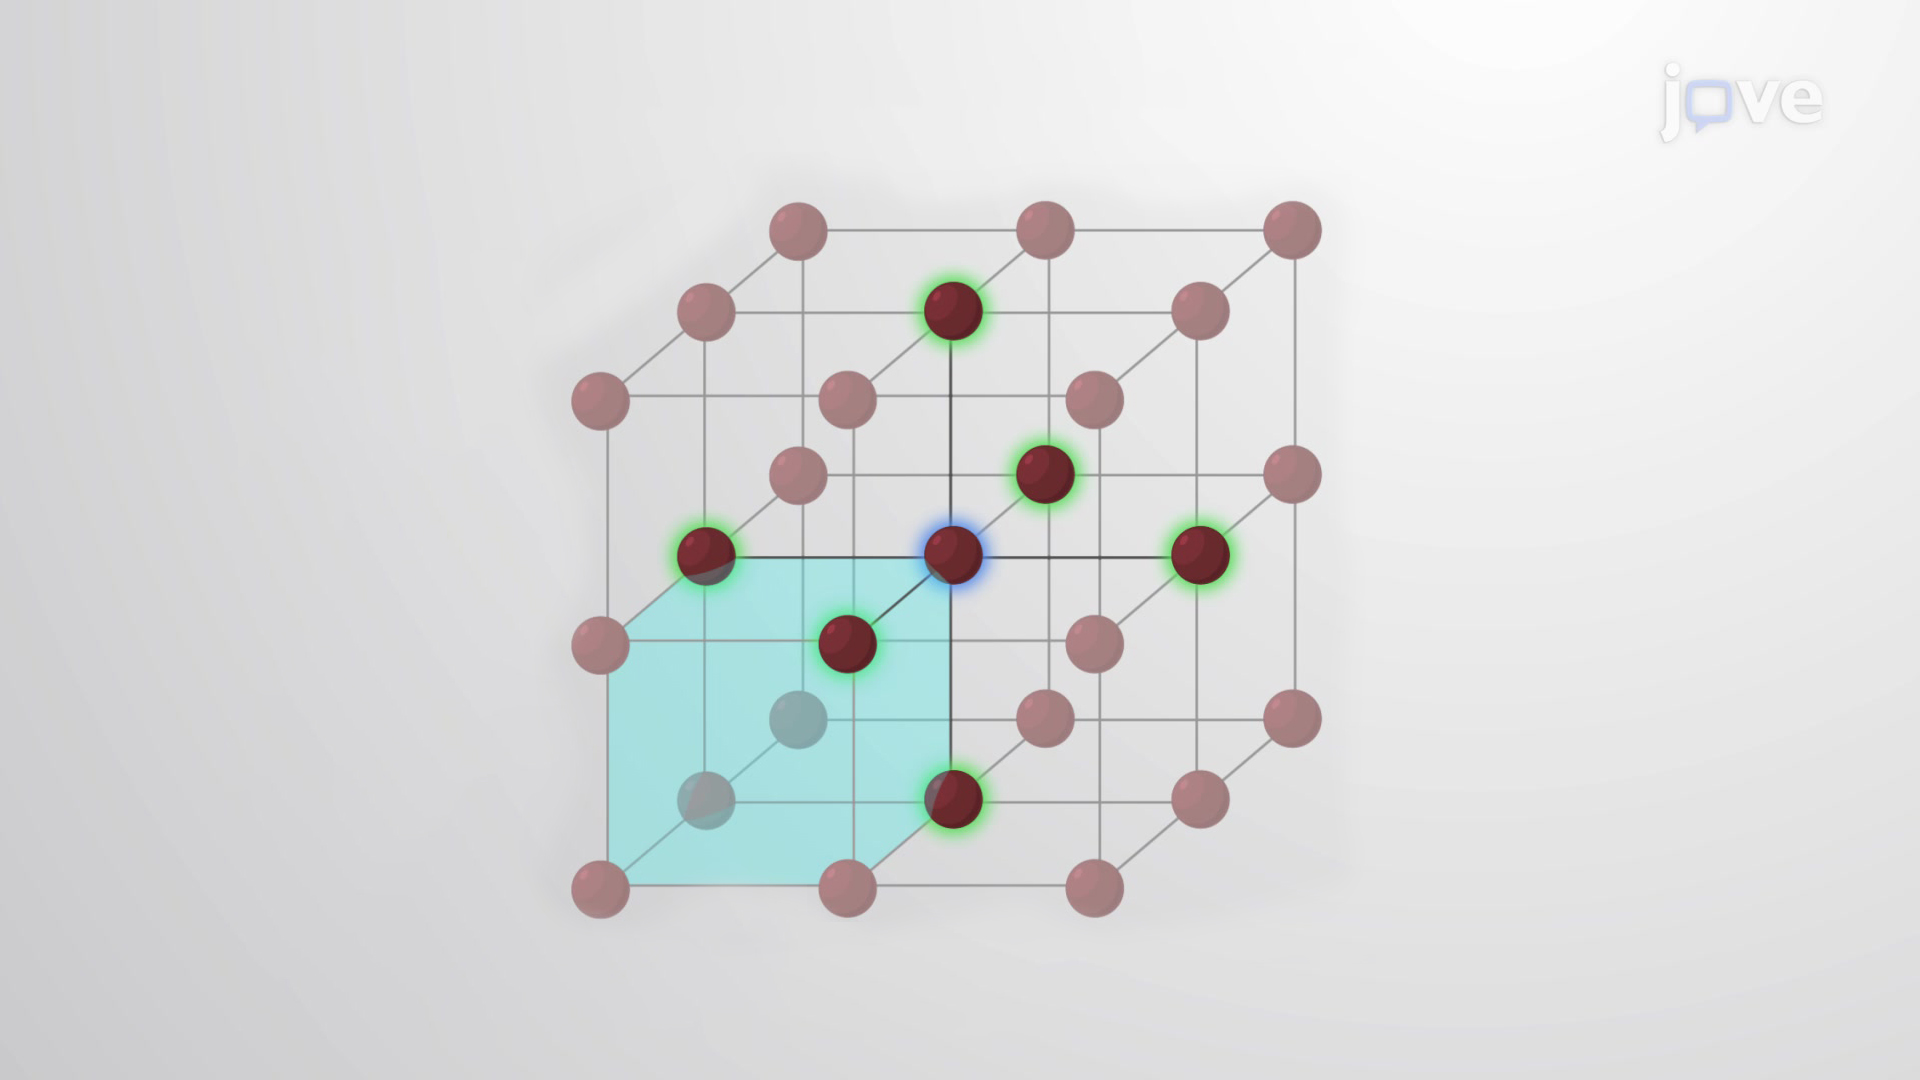 Lattice Centering and Coordination Number